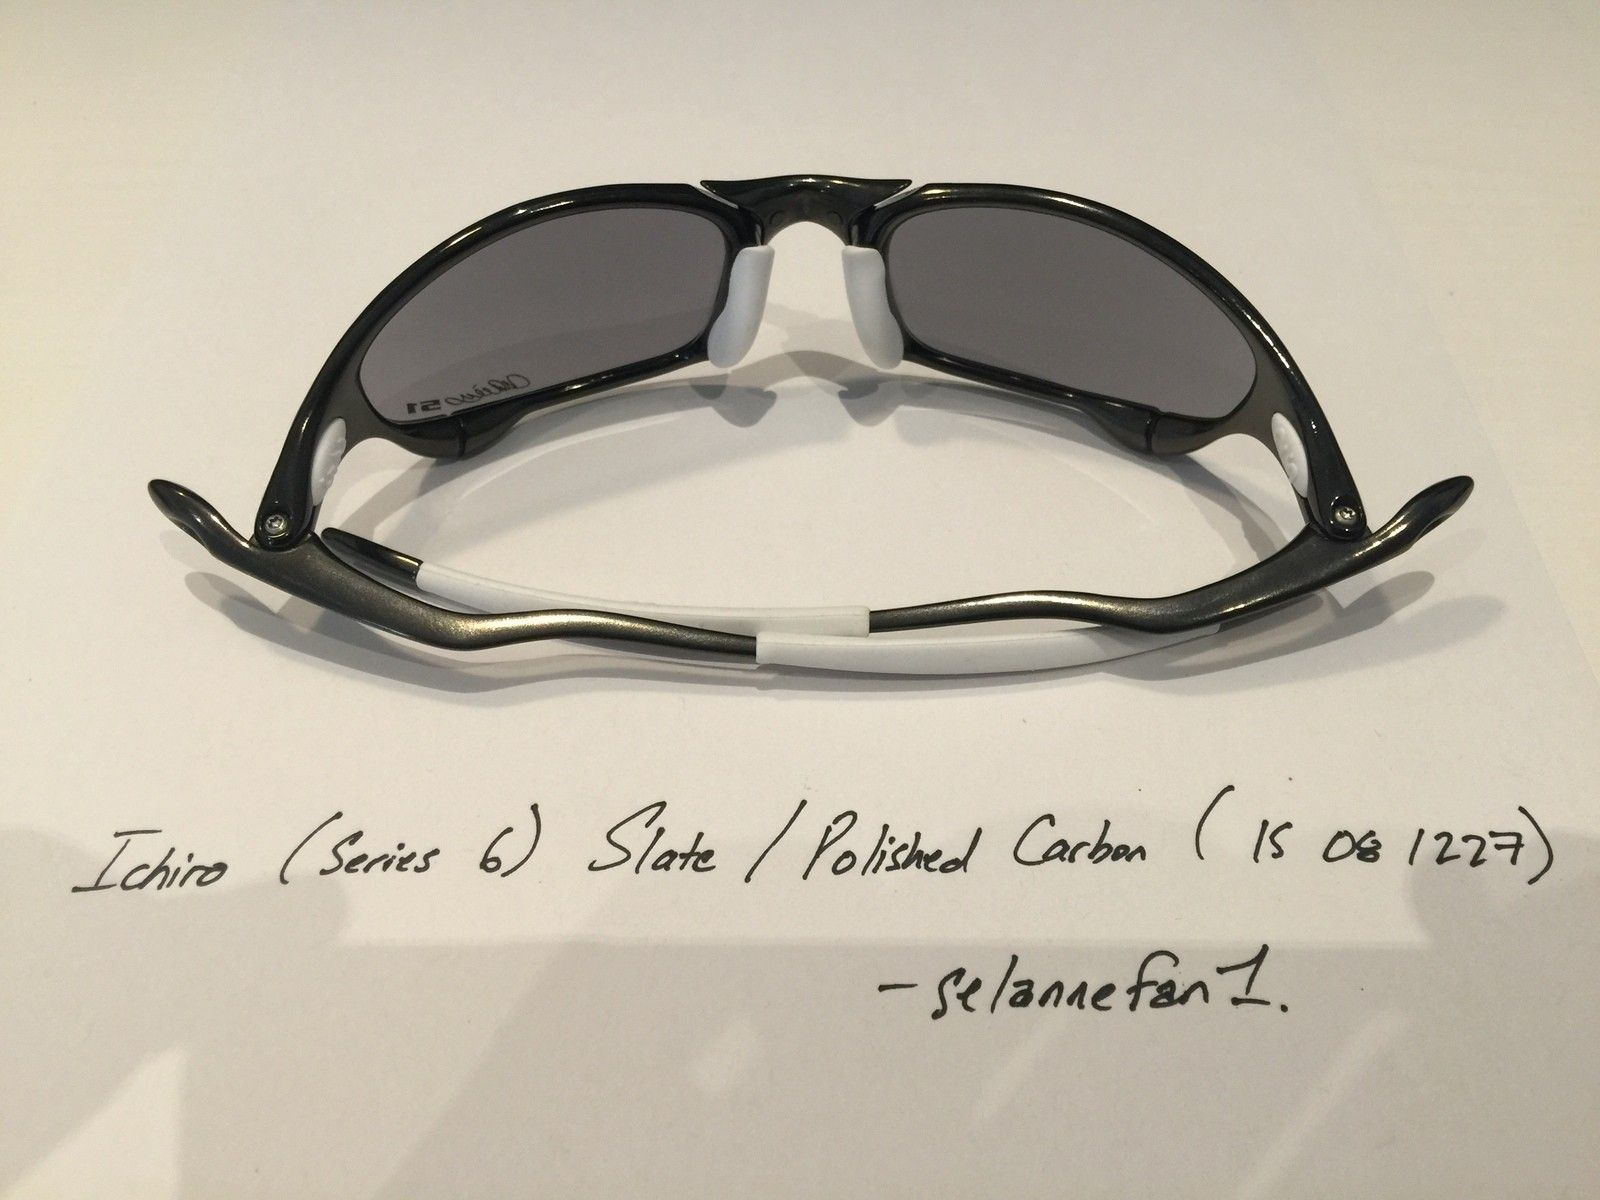 Ichiro Polished Carbon / Slate Juliets (with serial) - IMG_3778.JPG